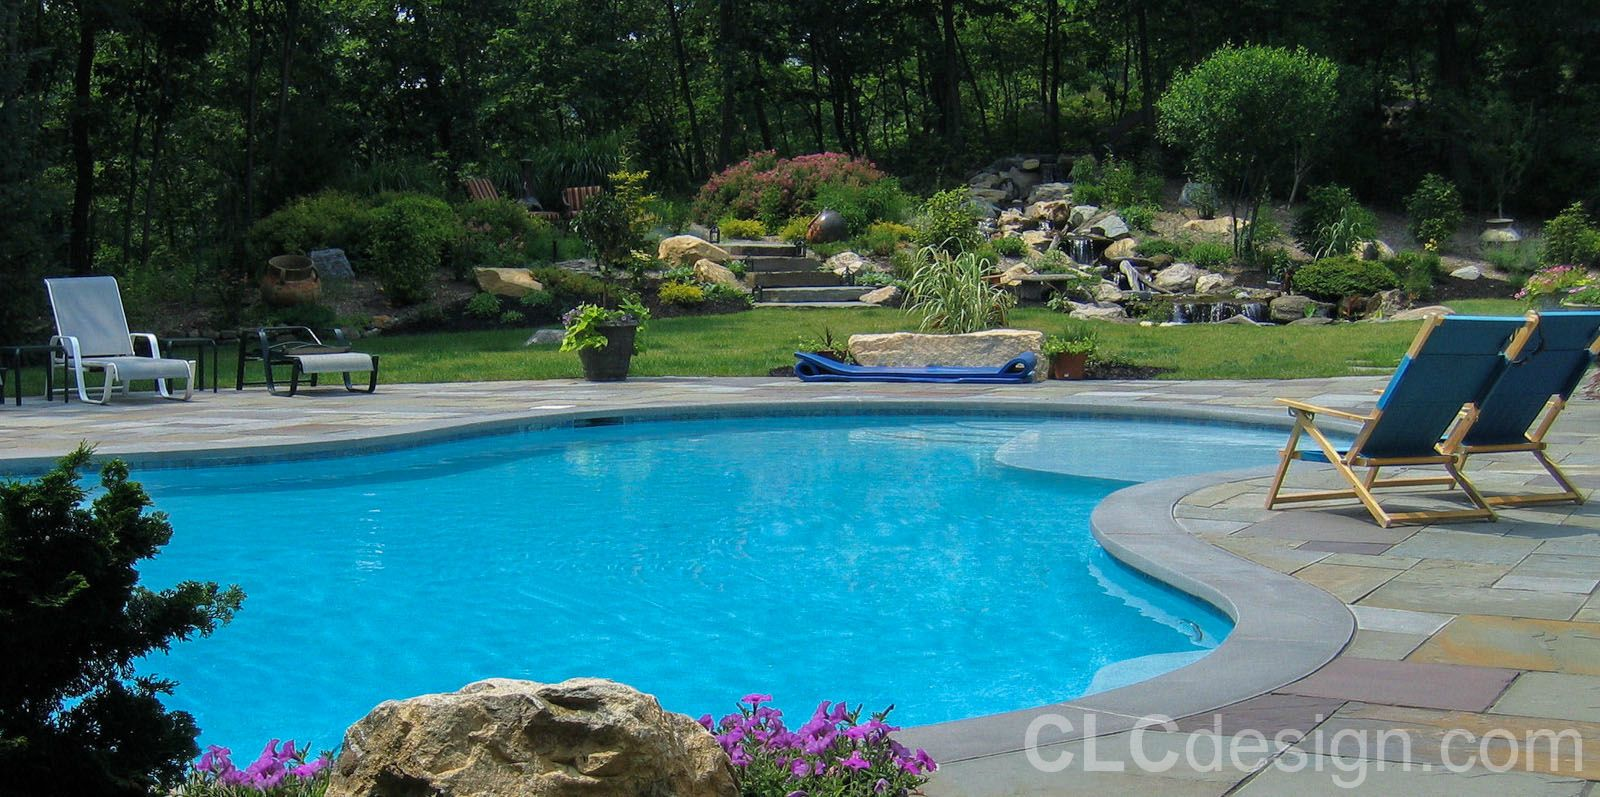 Want To Be The One Hosting The Pool Parties Next Summer It S Not Too Late To Make That Happen Poolparty Swimmingpool Pool Landscape Design Pool Designs